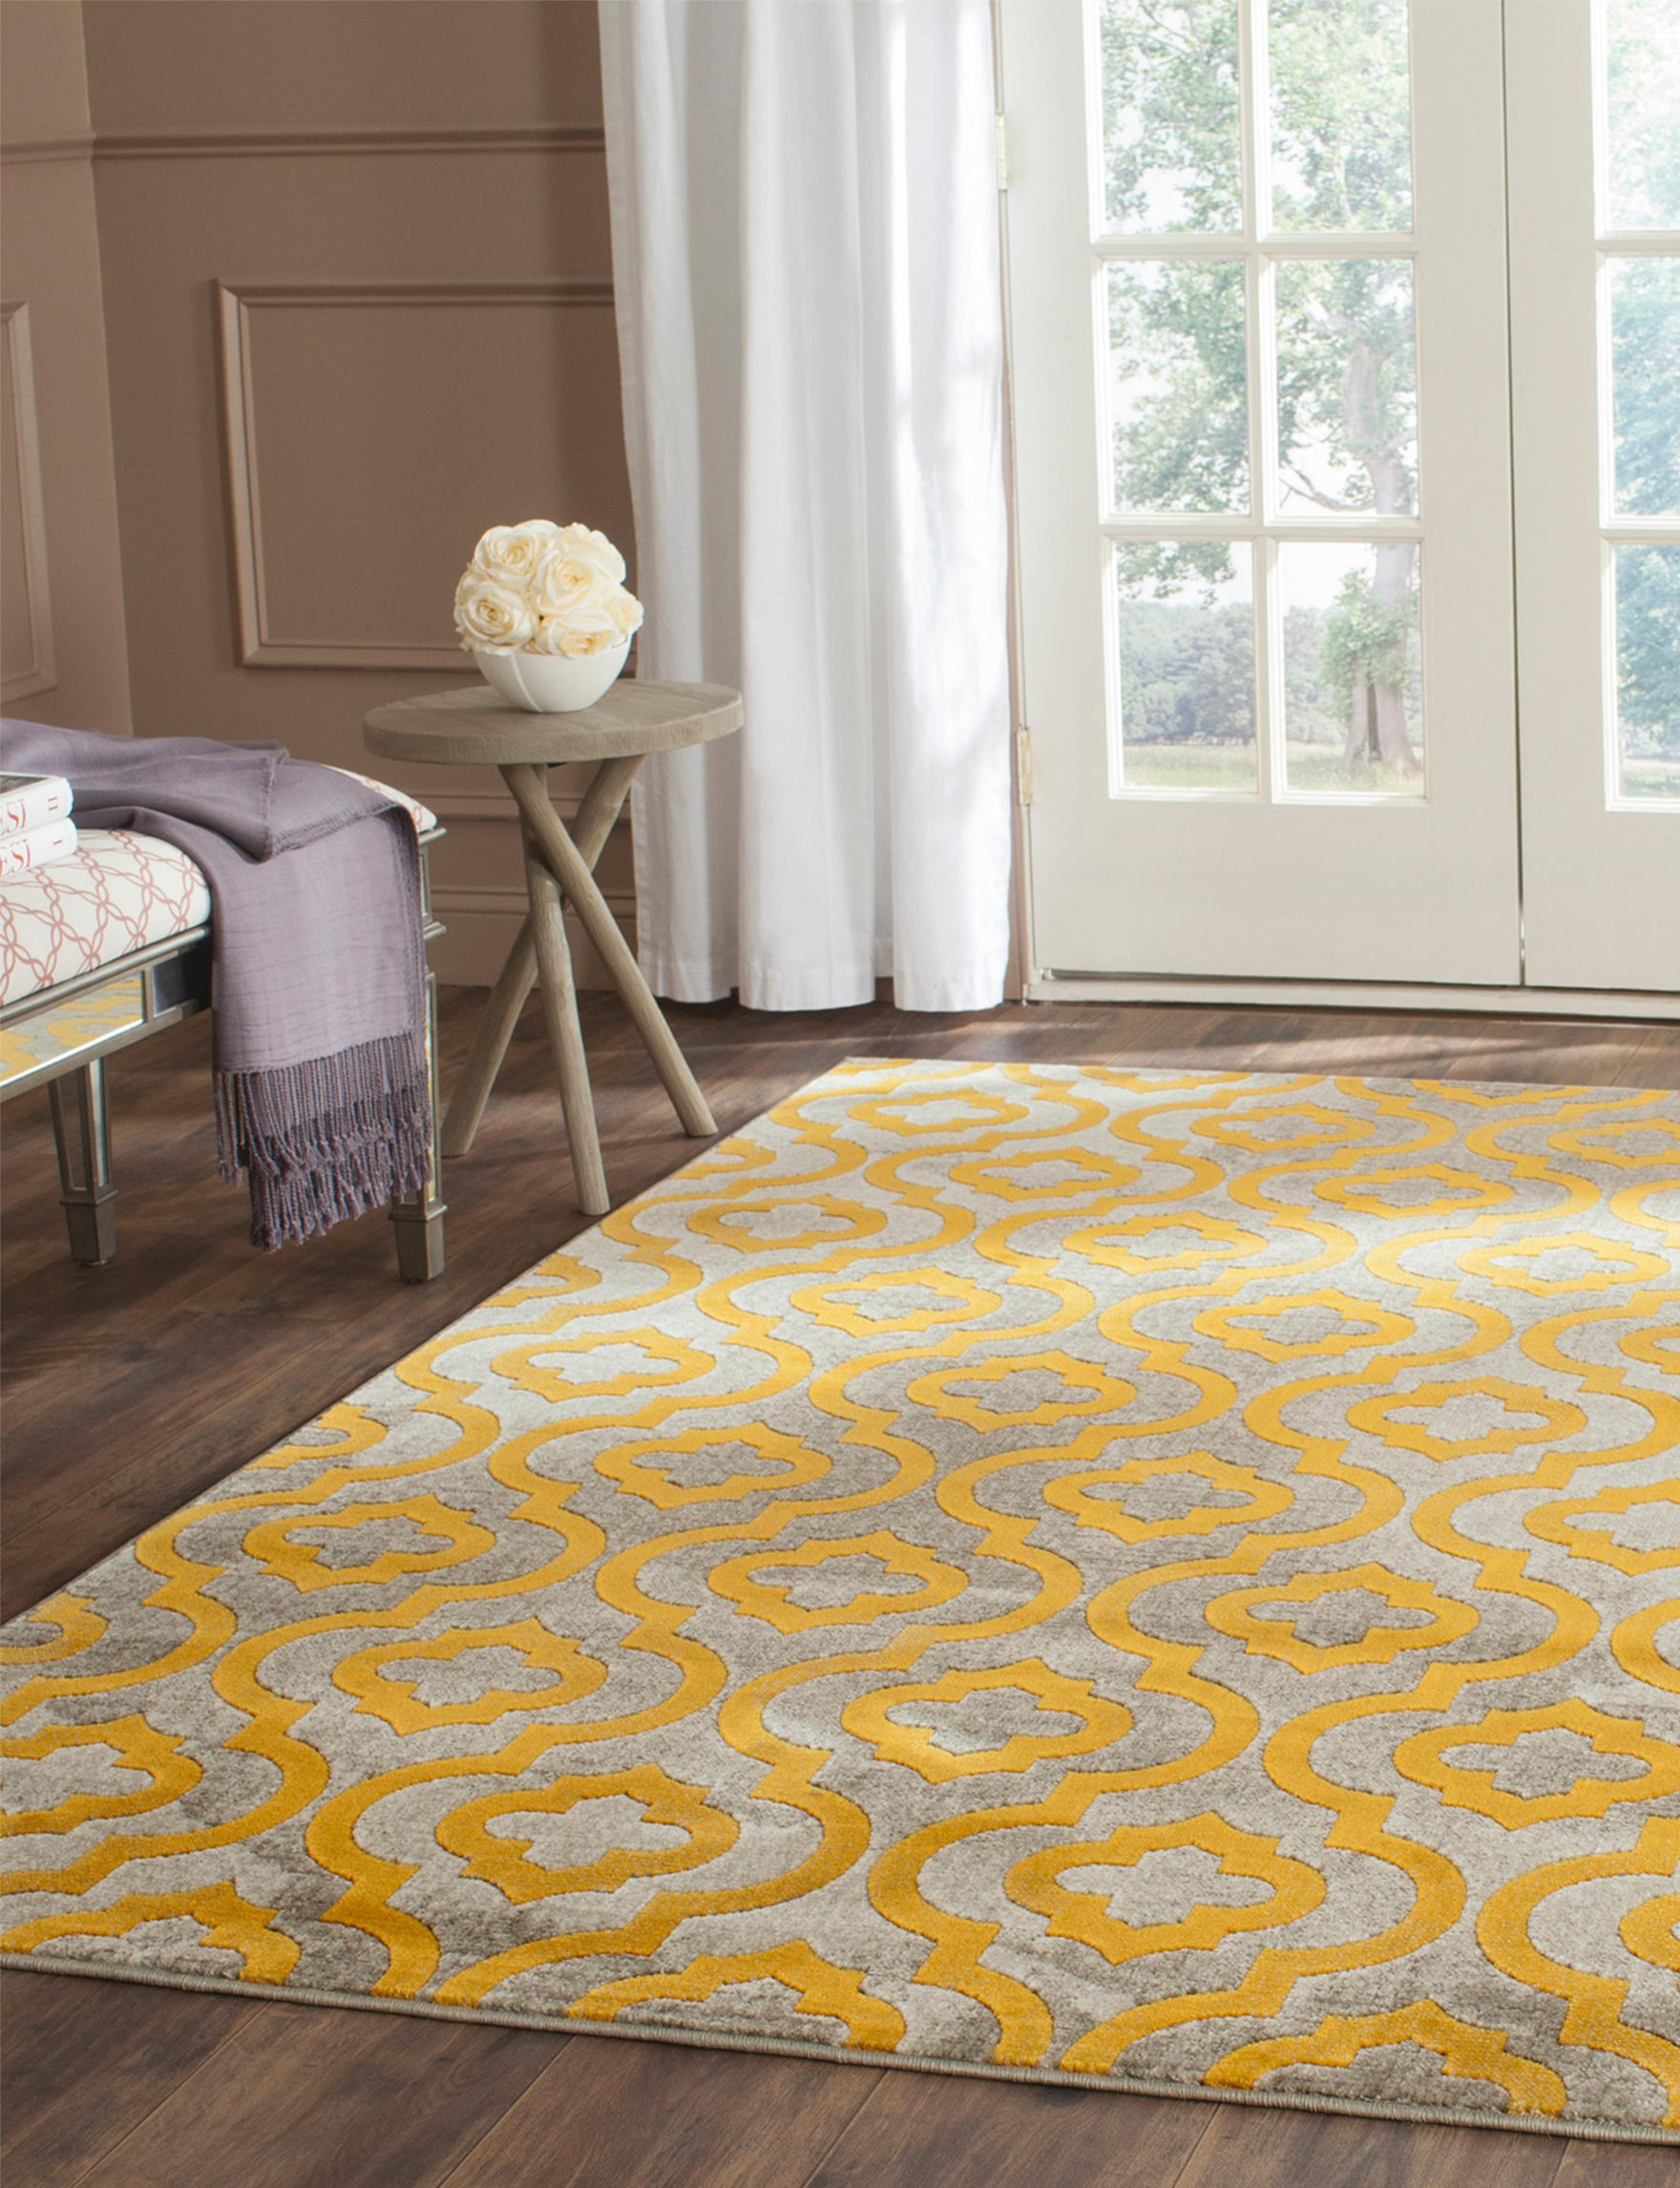 Safavieh Yellow Rugs